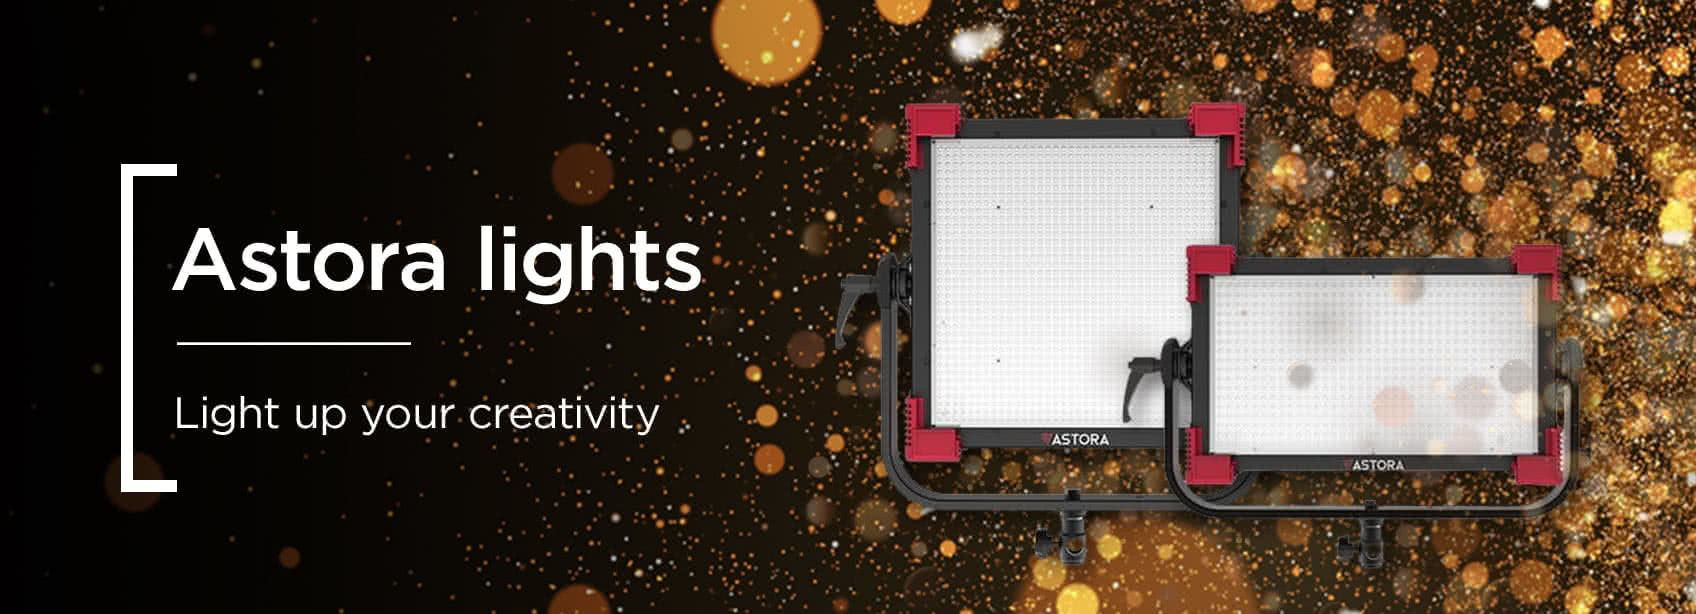 Astora Lights | Light up your creativity